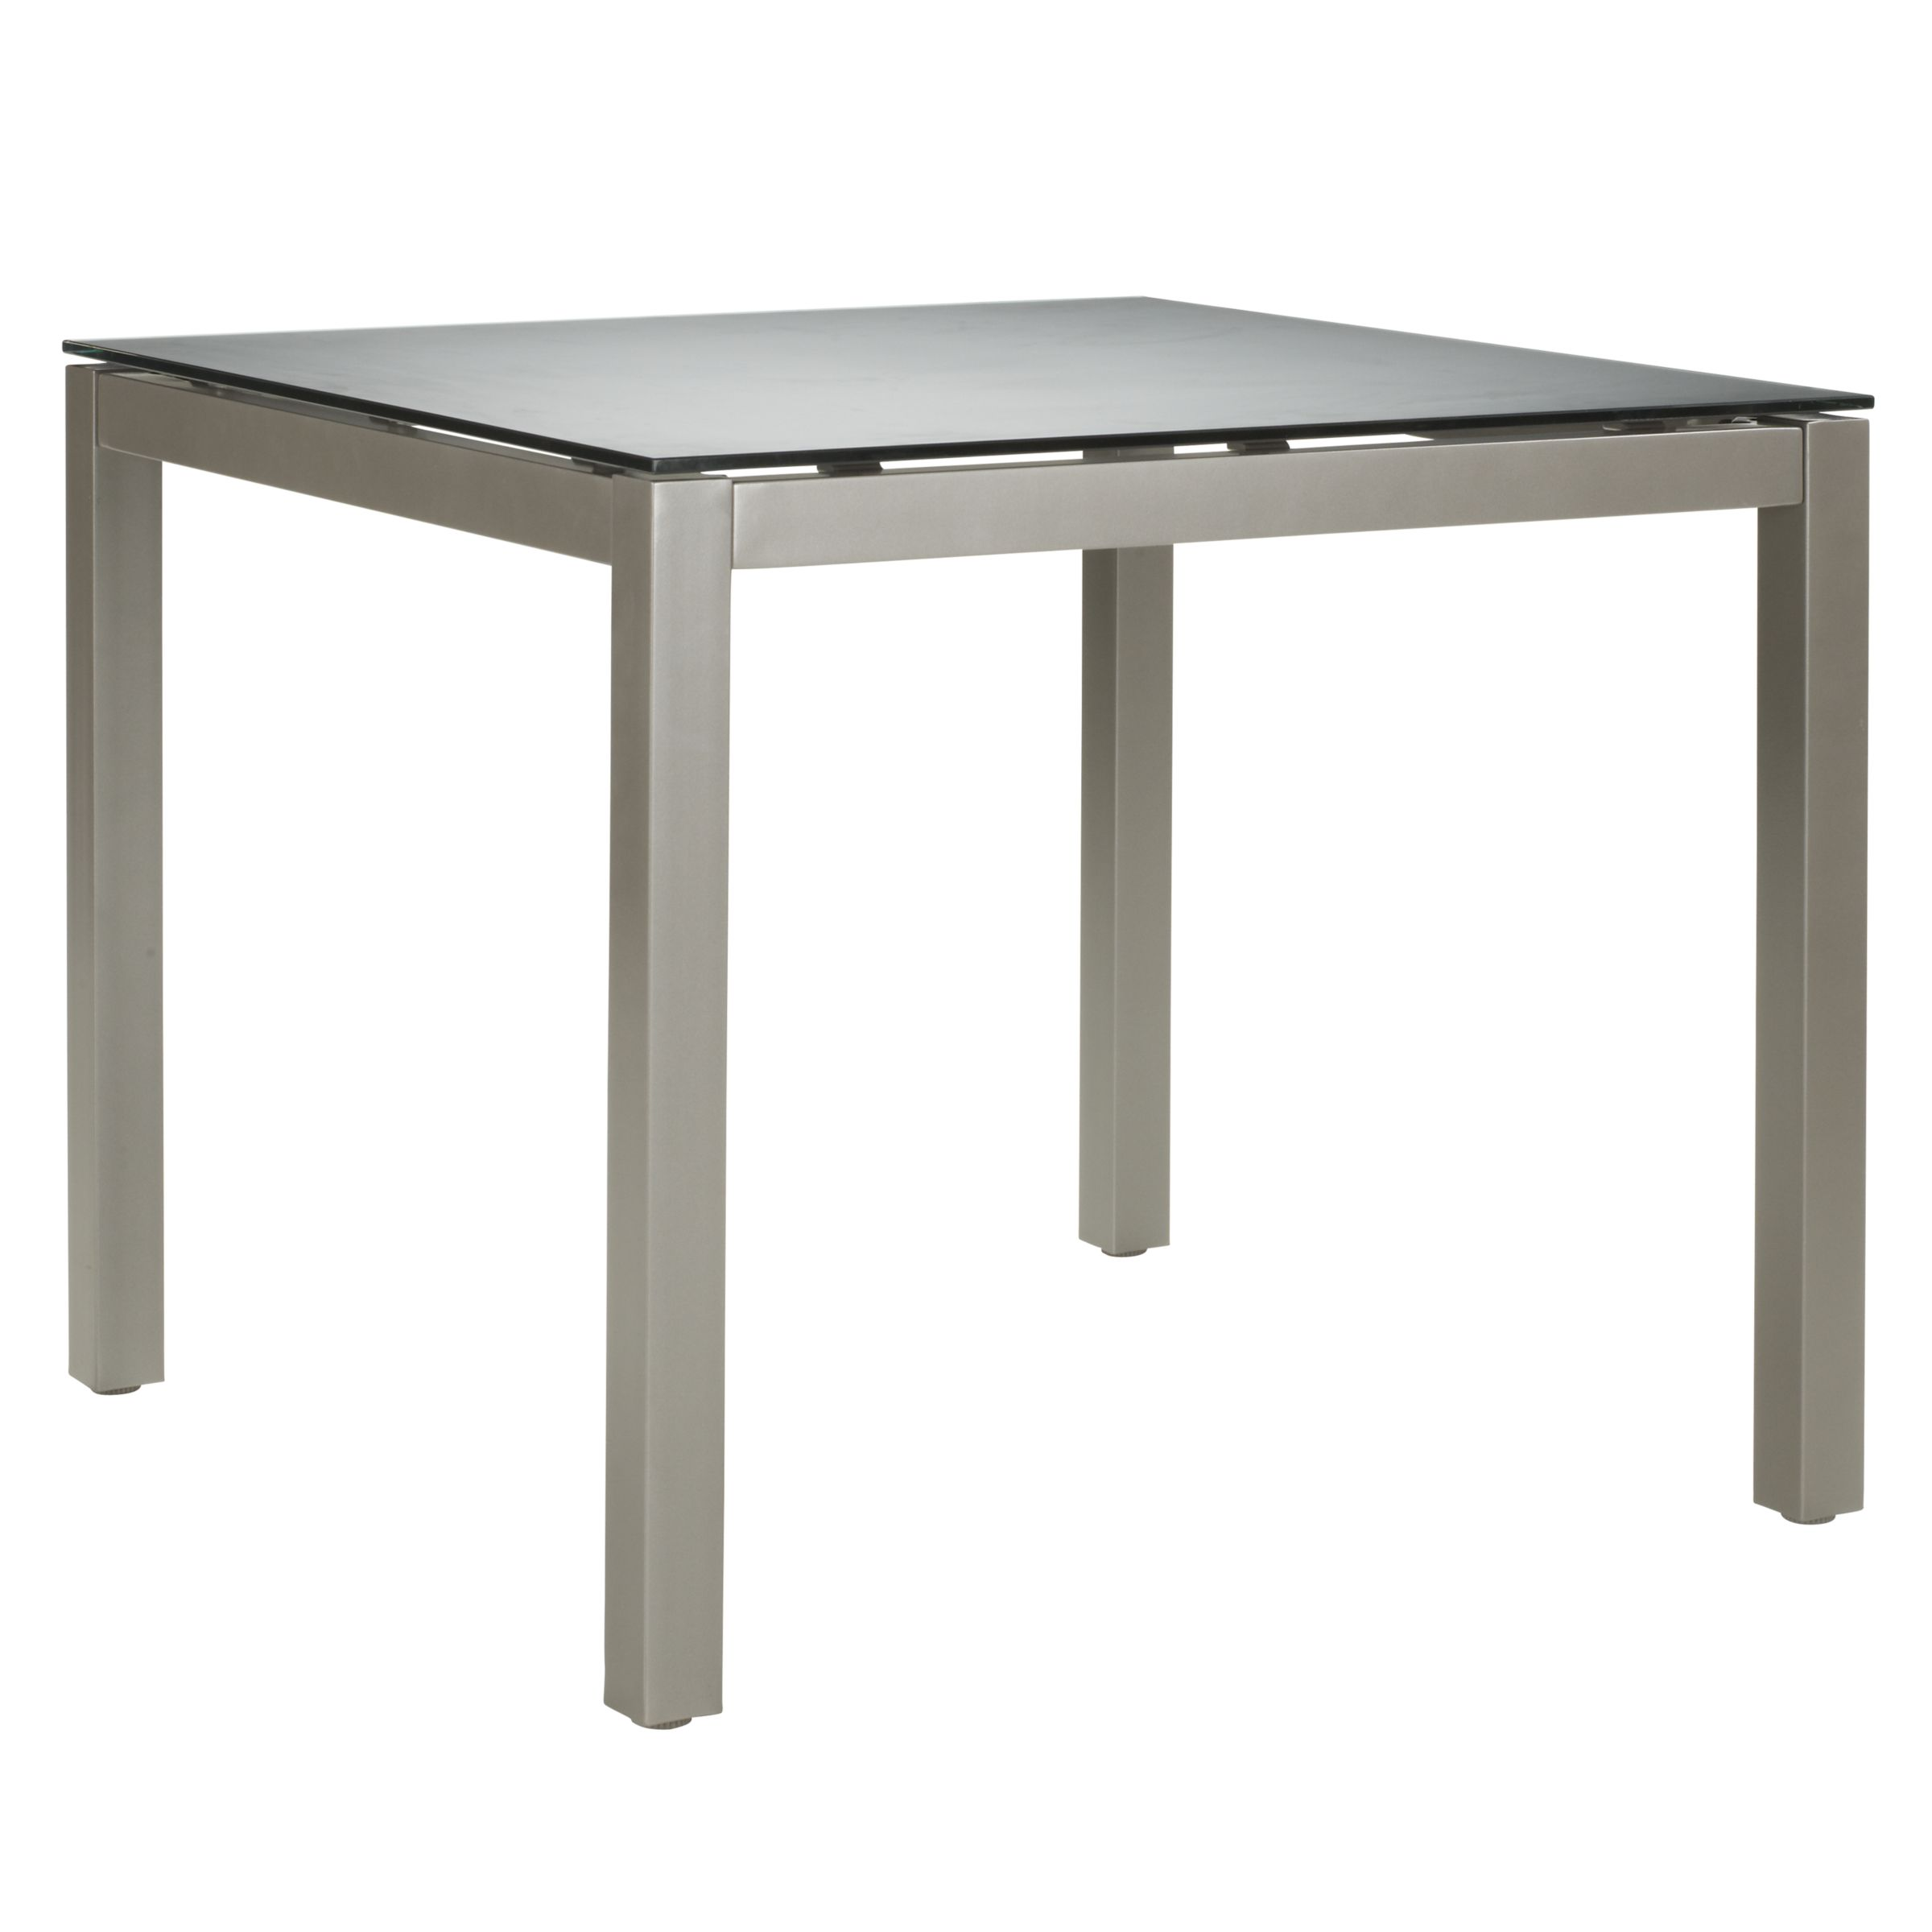 Gloster Azore Square Frame Outdoor Table